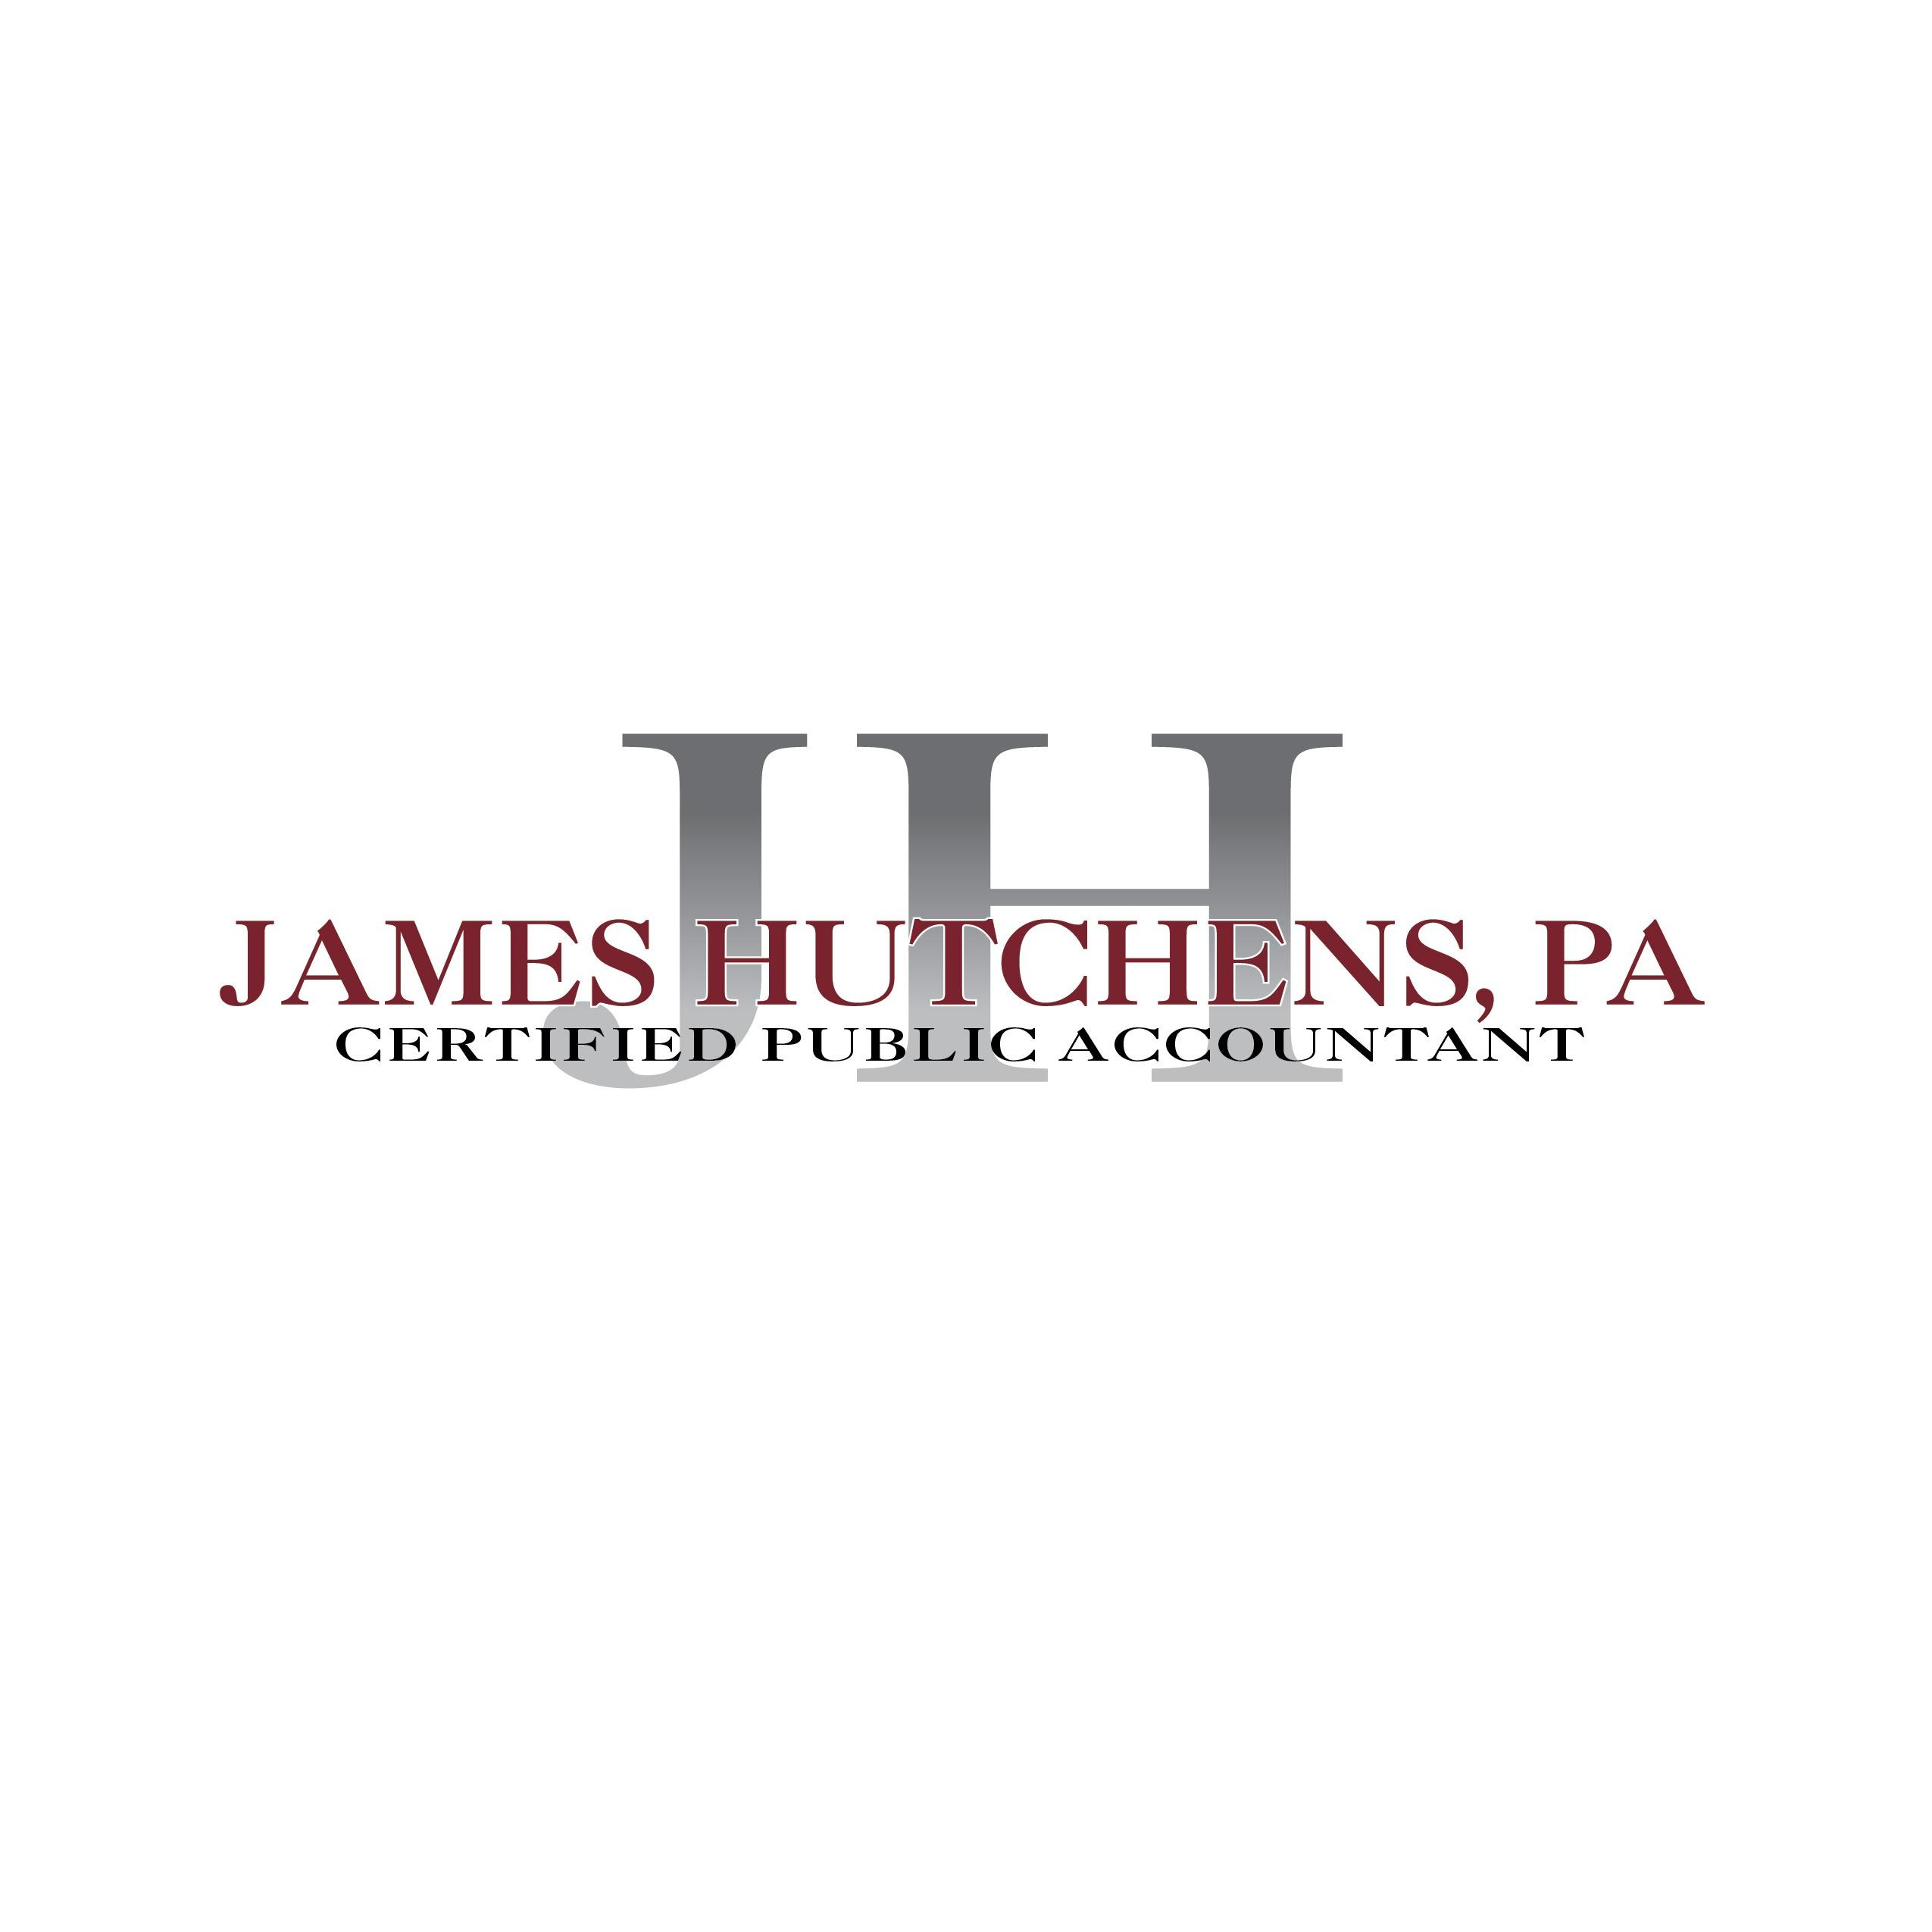 James Hutchens P.A. Certified Public Accountant - Sandpoint, ID - Accounting